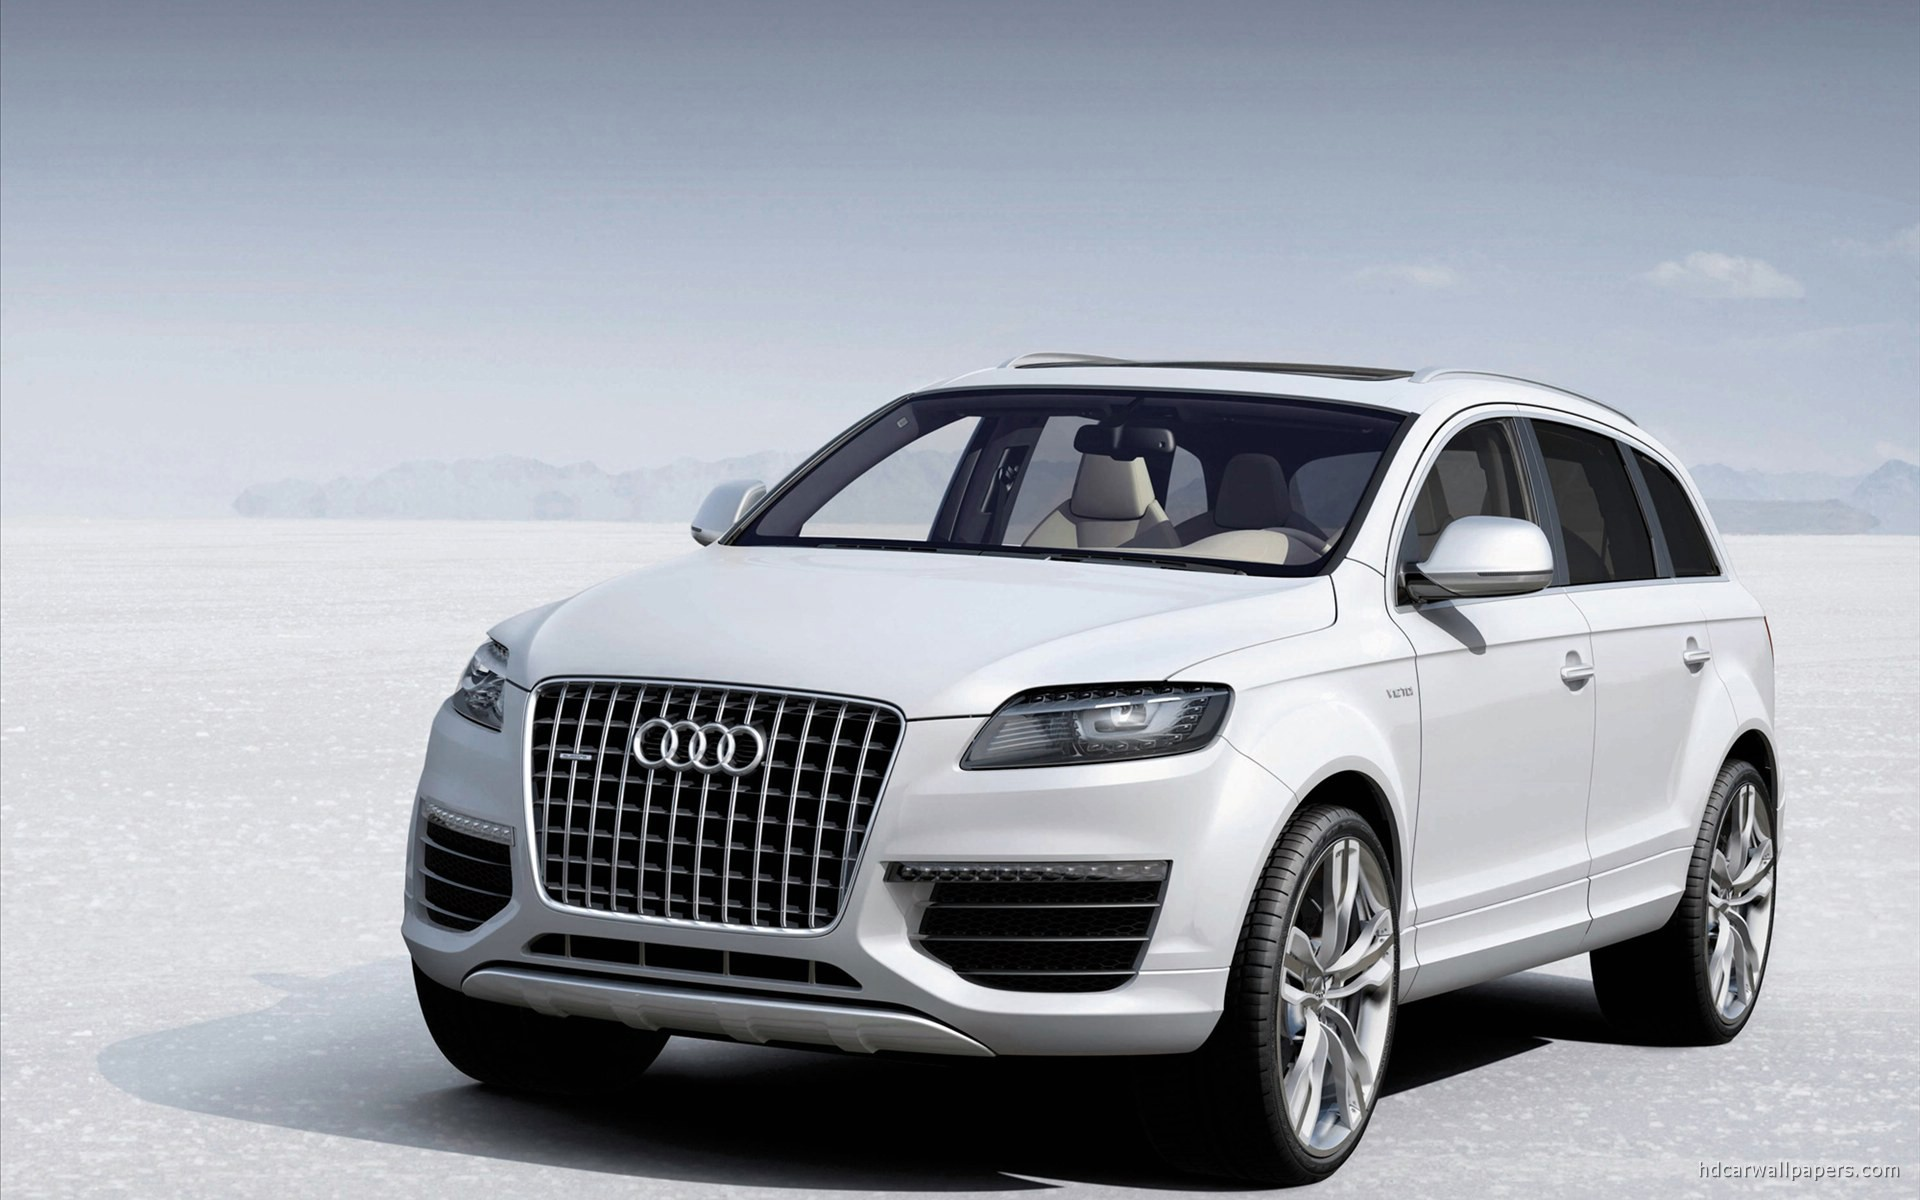 Audi R7 2012 http://www.hdcarwallpapers.com/2012_audi_q7_v12-wallpapers.html